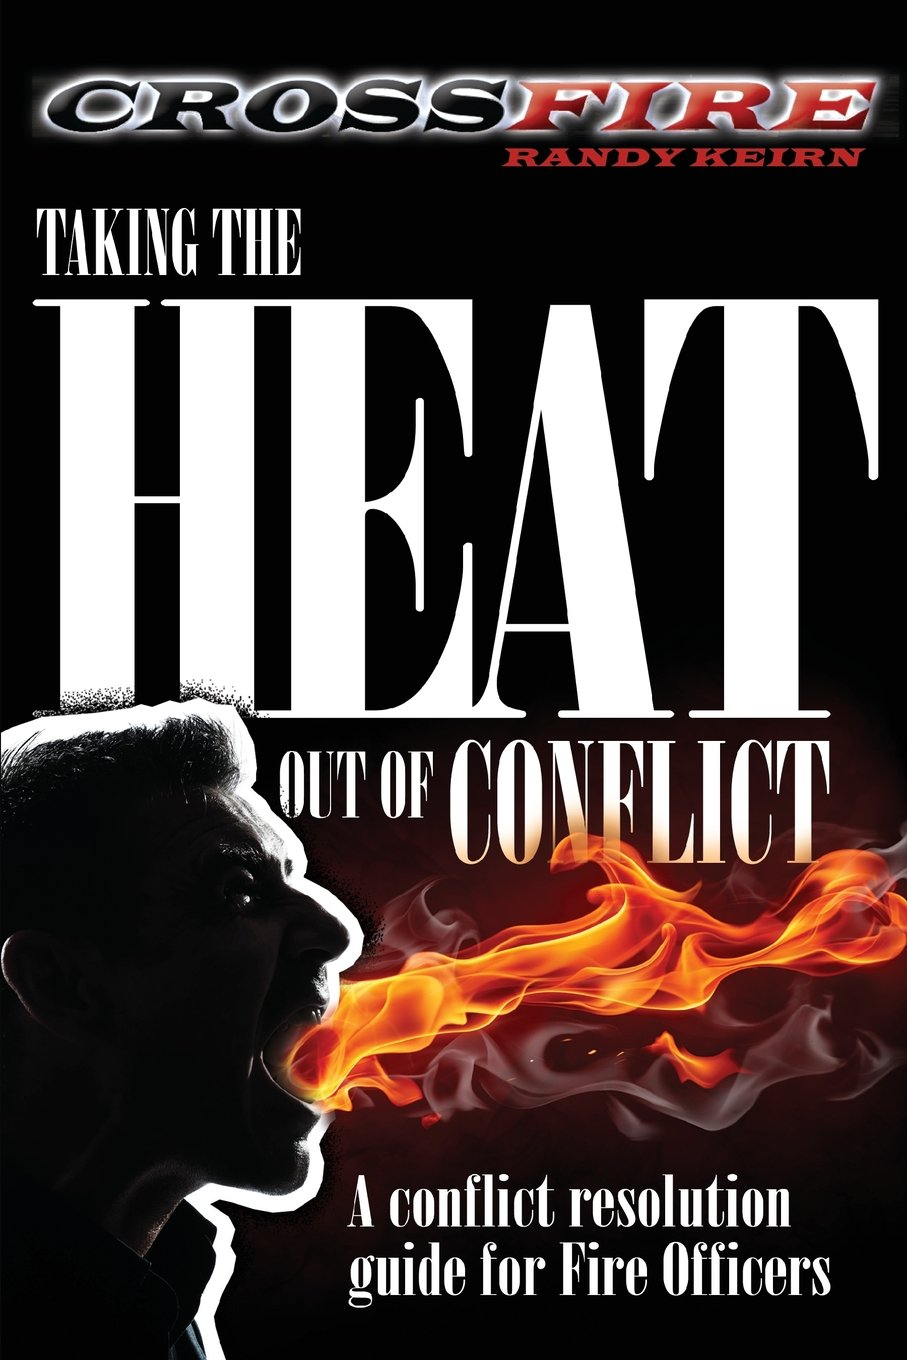 Read Online CROSSFire: Taking the Heat out of Conflict: A conflict resolution guide for Fire Officers PDF